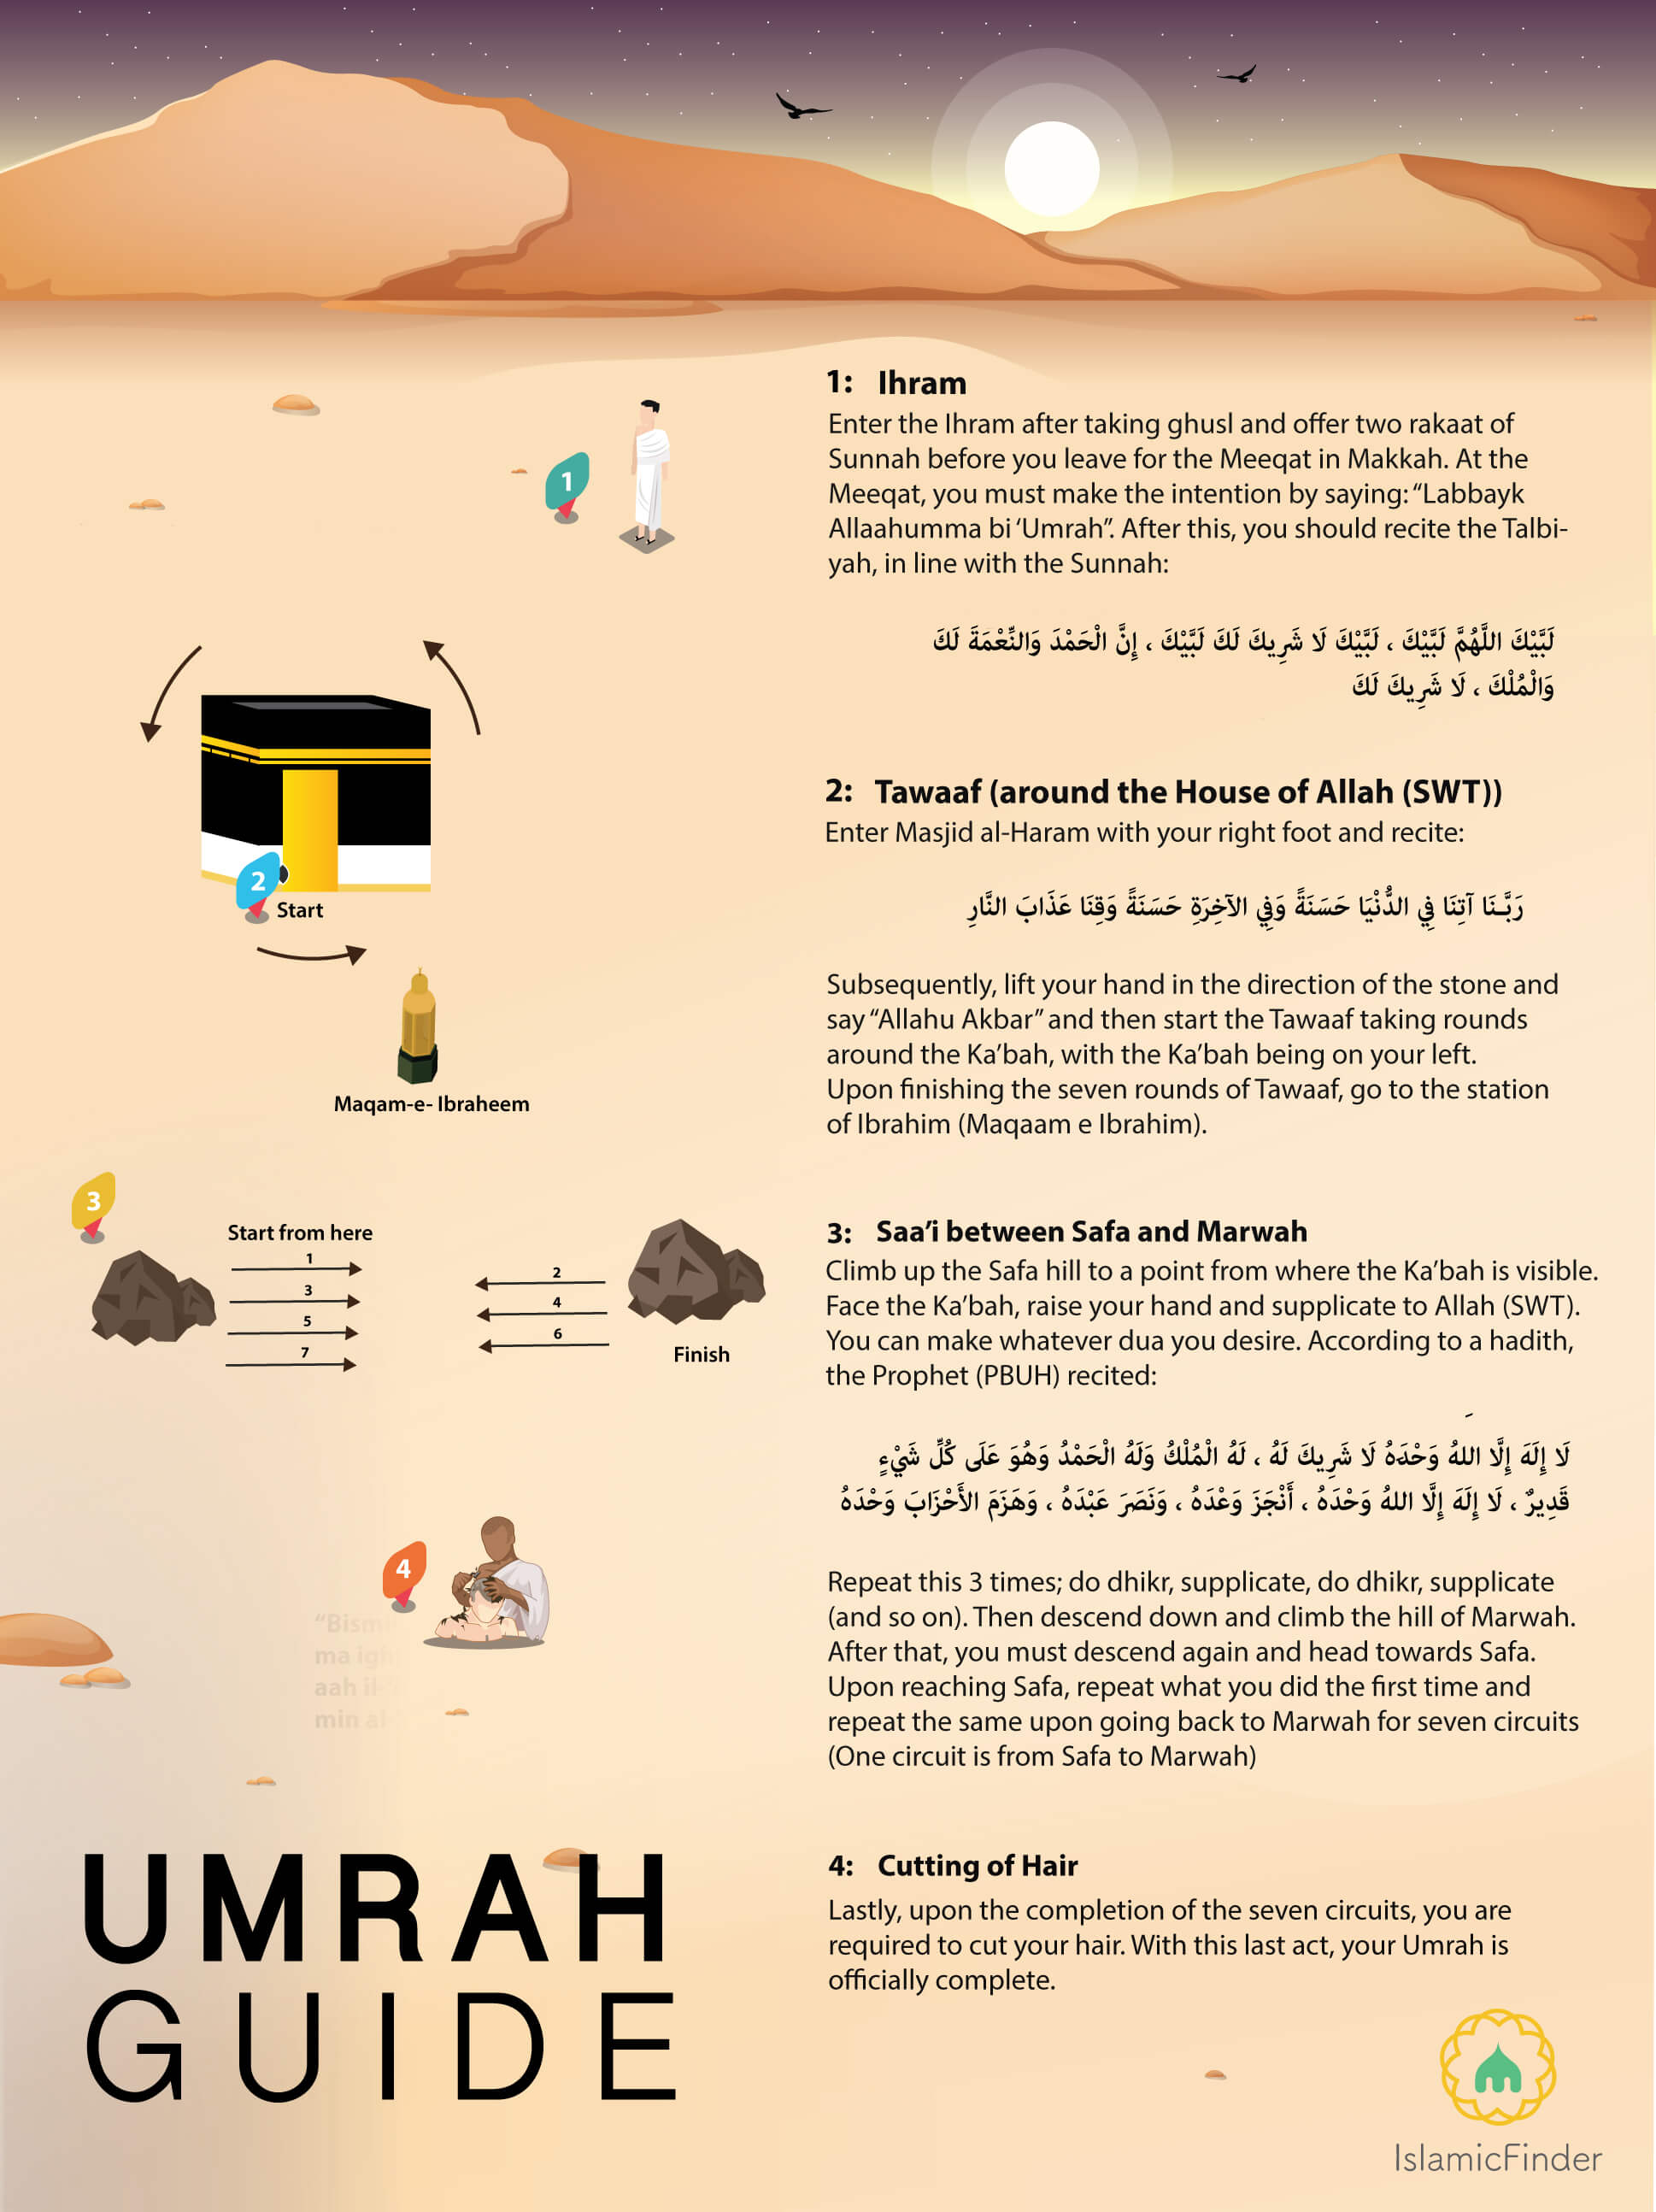 Umrah Guide: Step by Step Guide of How to Perform Umrah